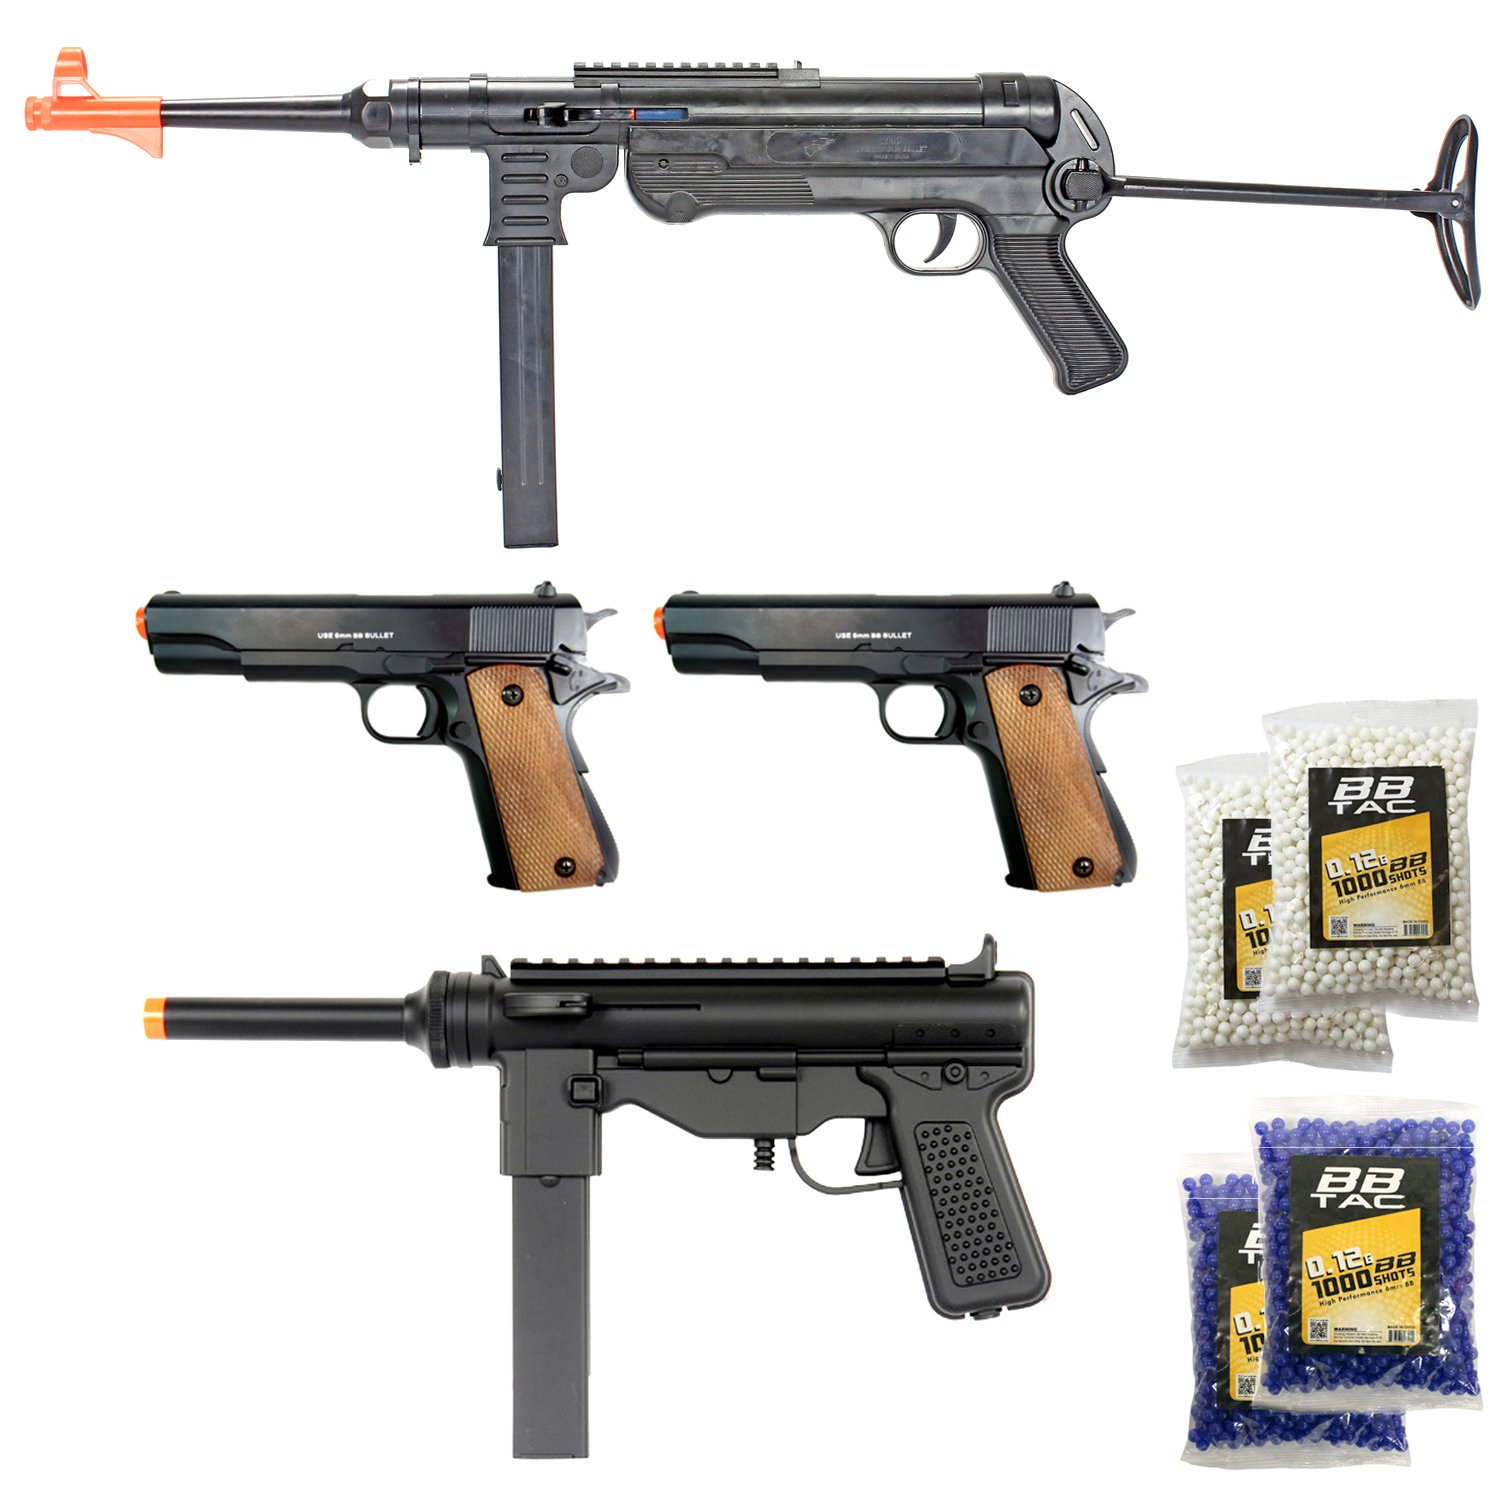 Airsoft equipment bundle